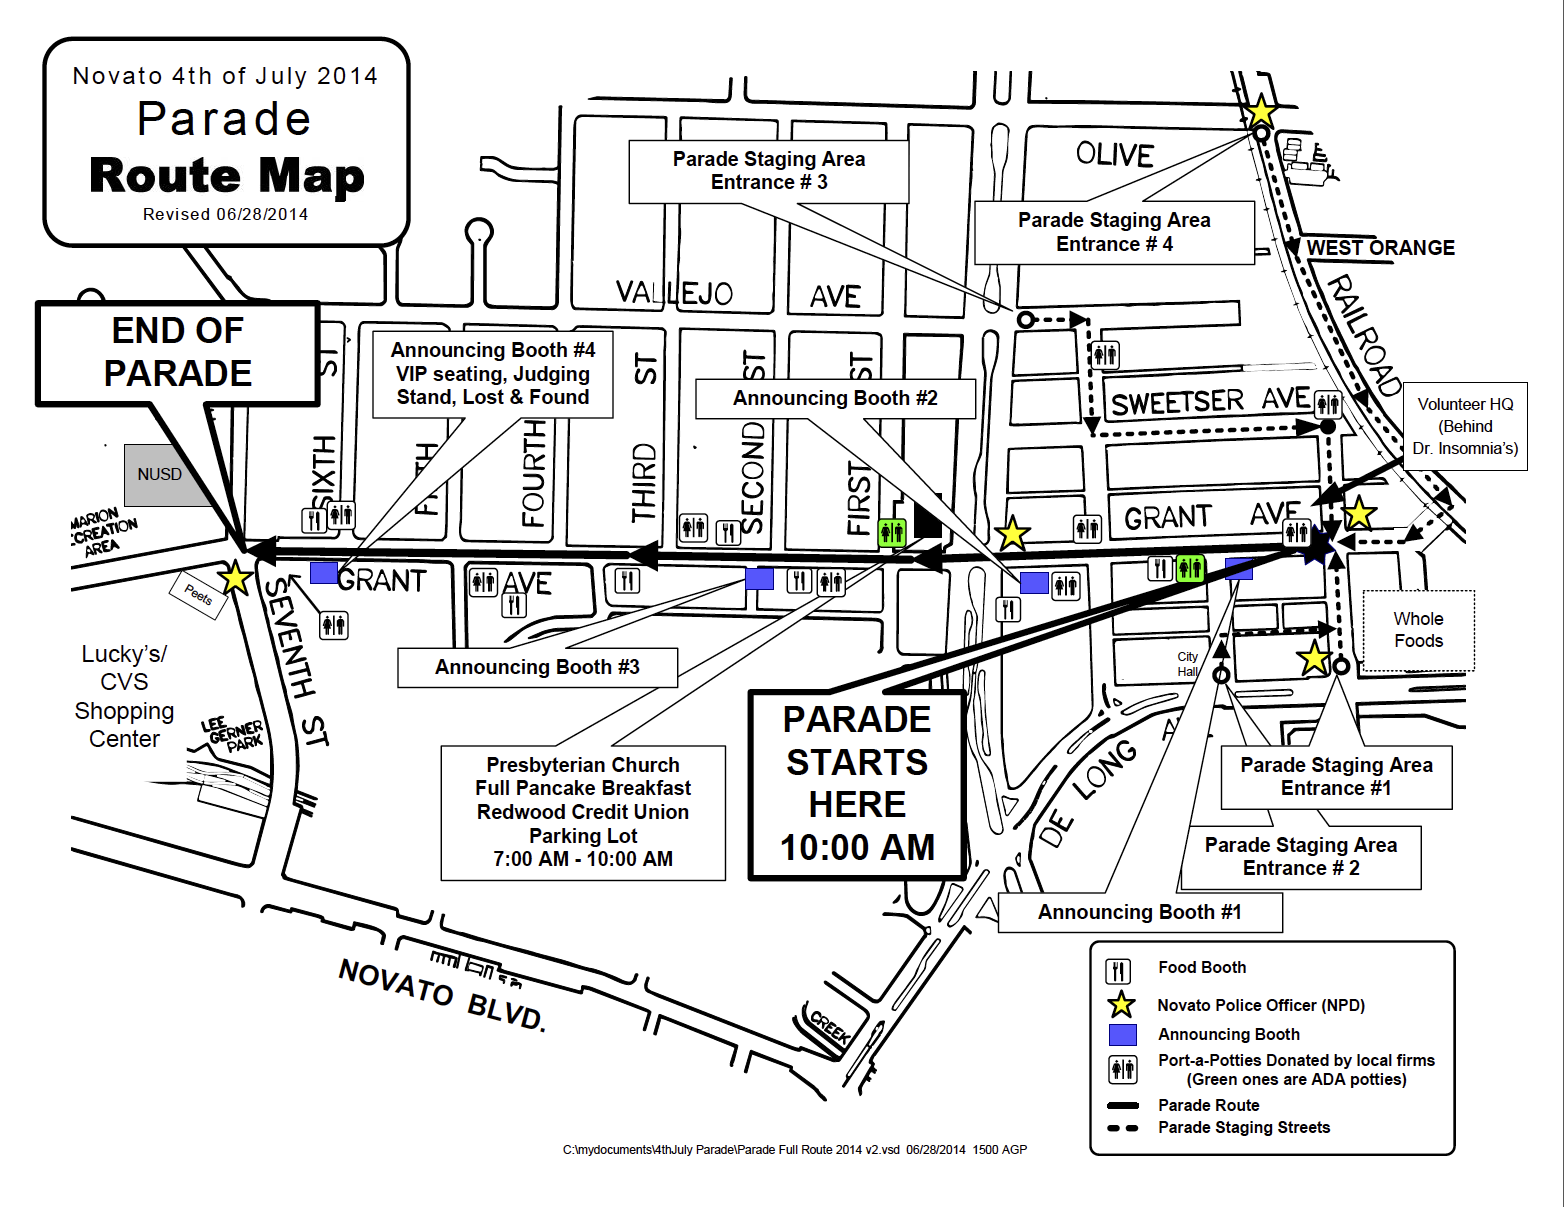 novato 4th of july 2014 parade route